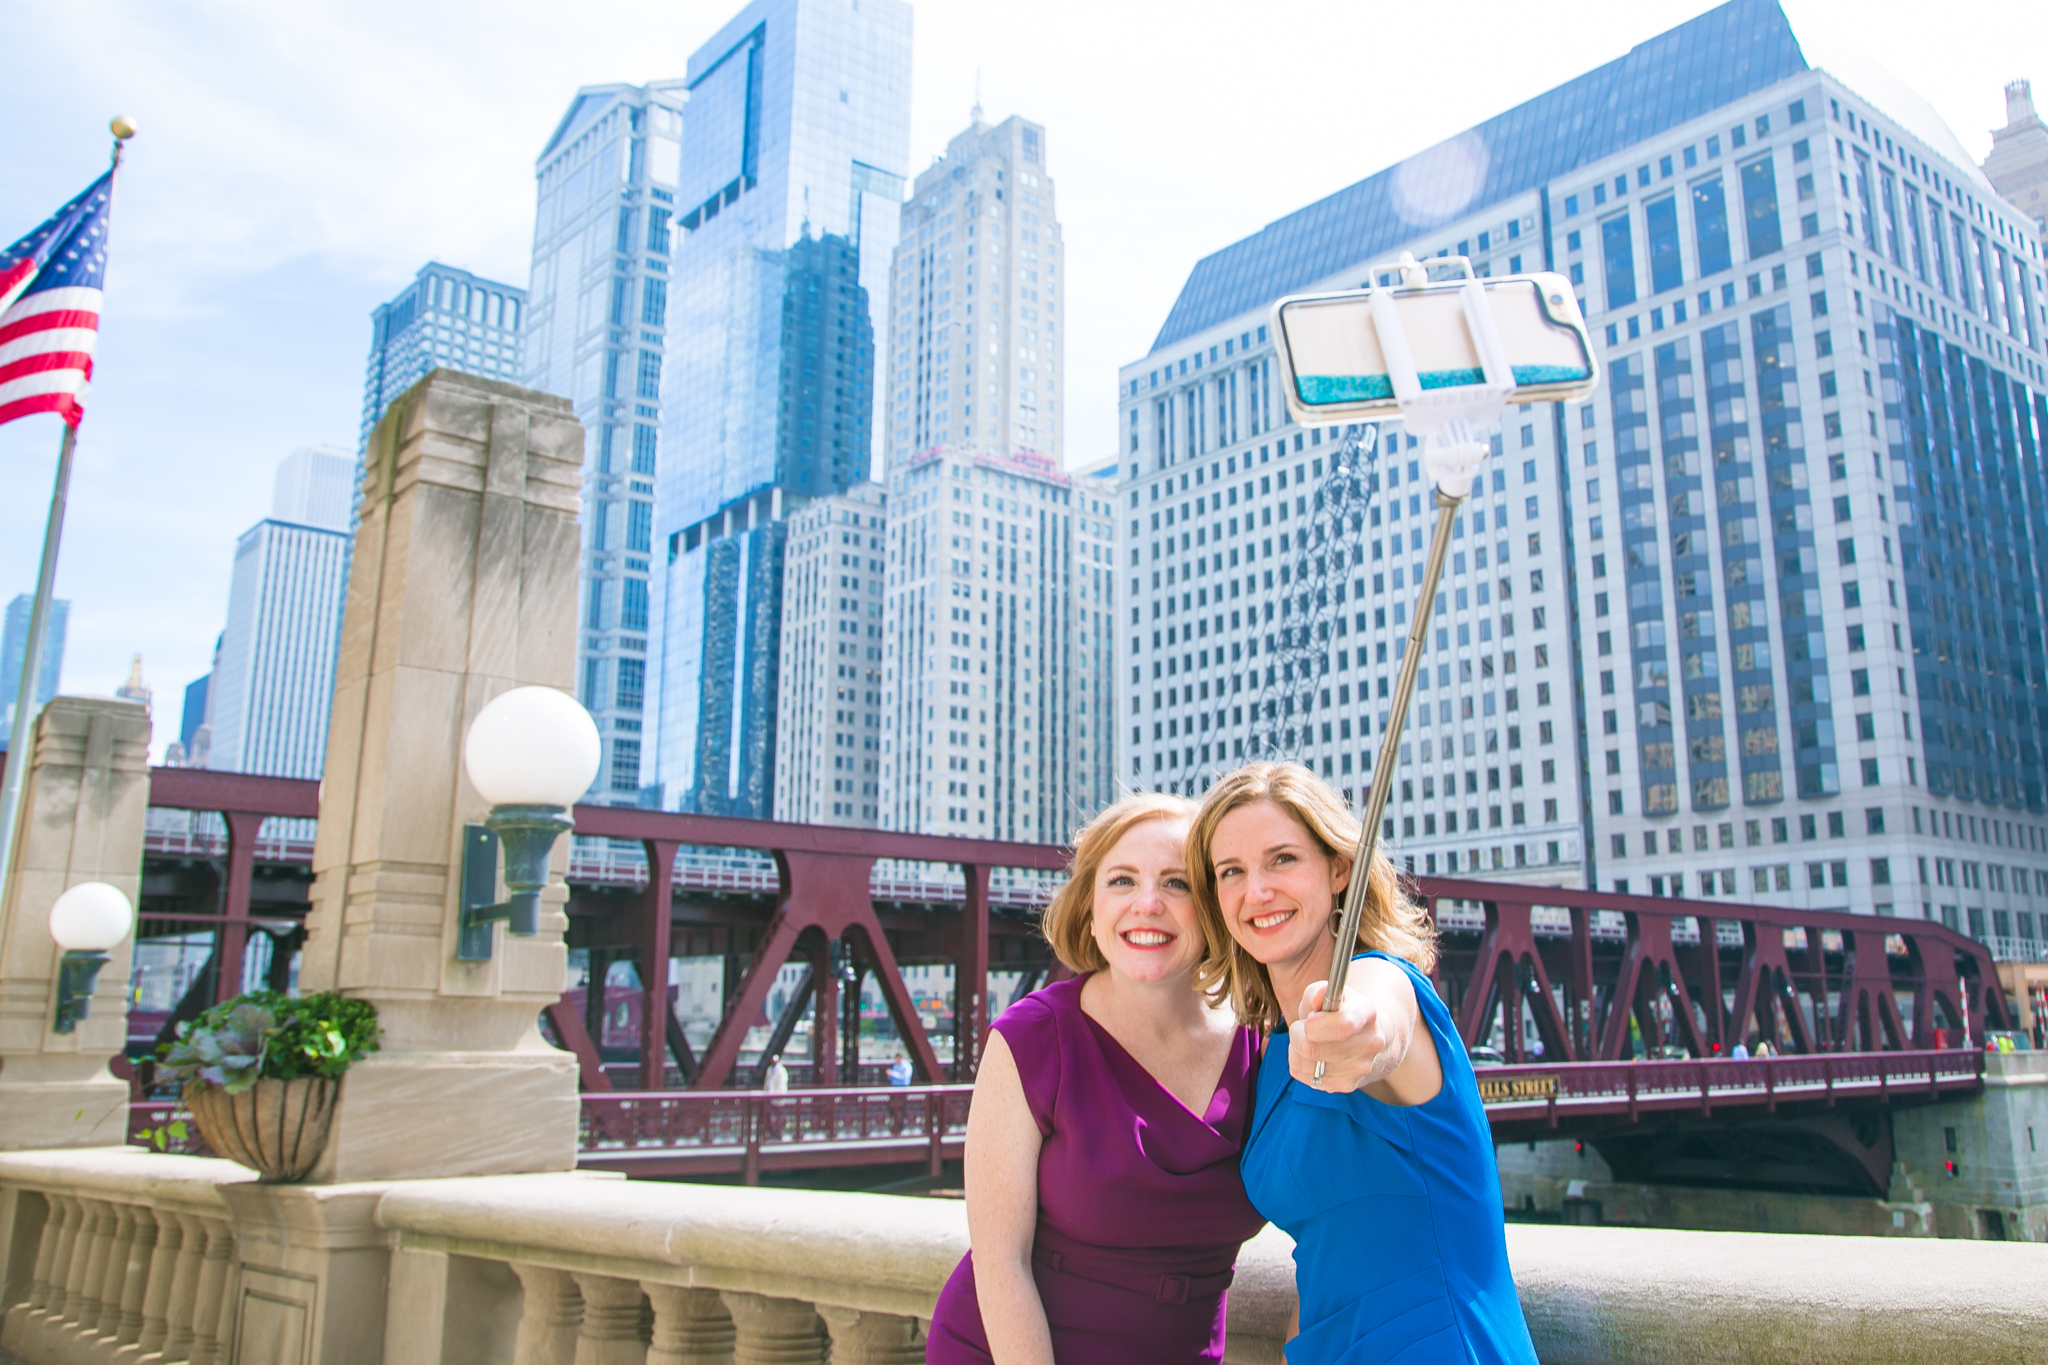 Pay Your Selfie co-founders Michelle Smyth (holding the selfie stick) and Kristen Holman